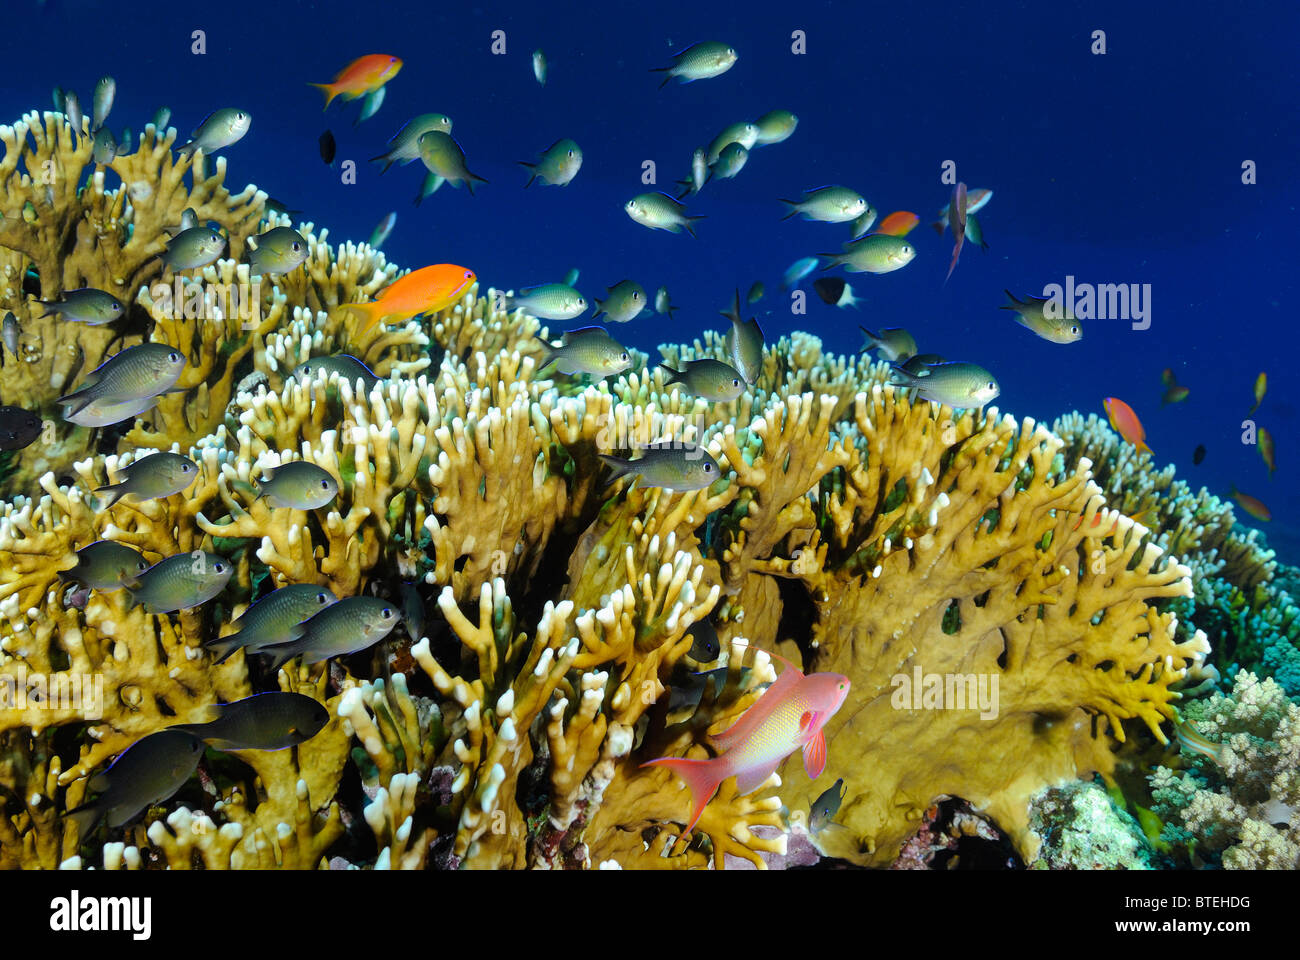 Colony of fire coral growing off Hamata coast, Egypt, Red Sea Stock Photo